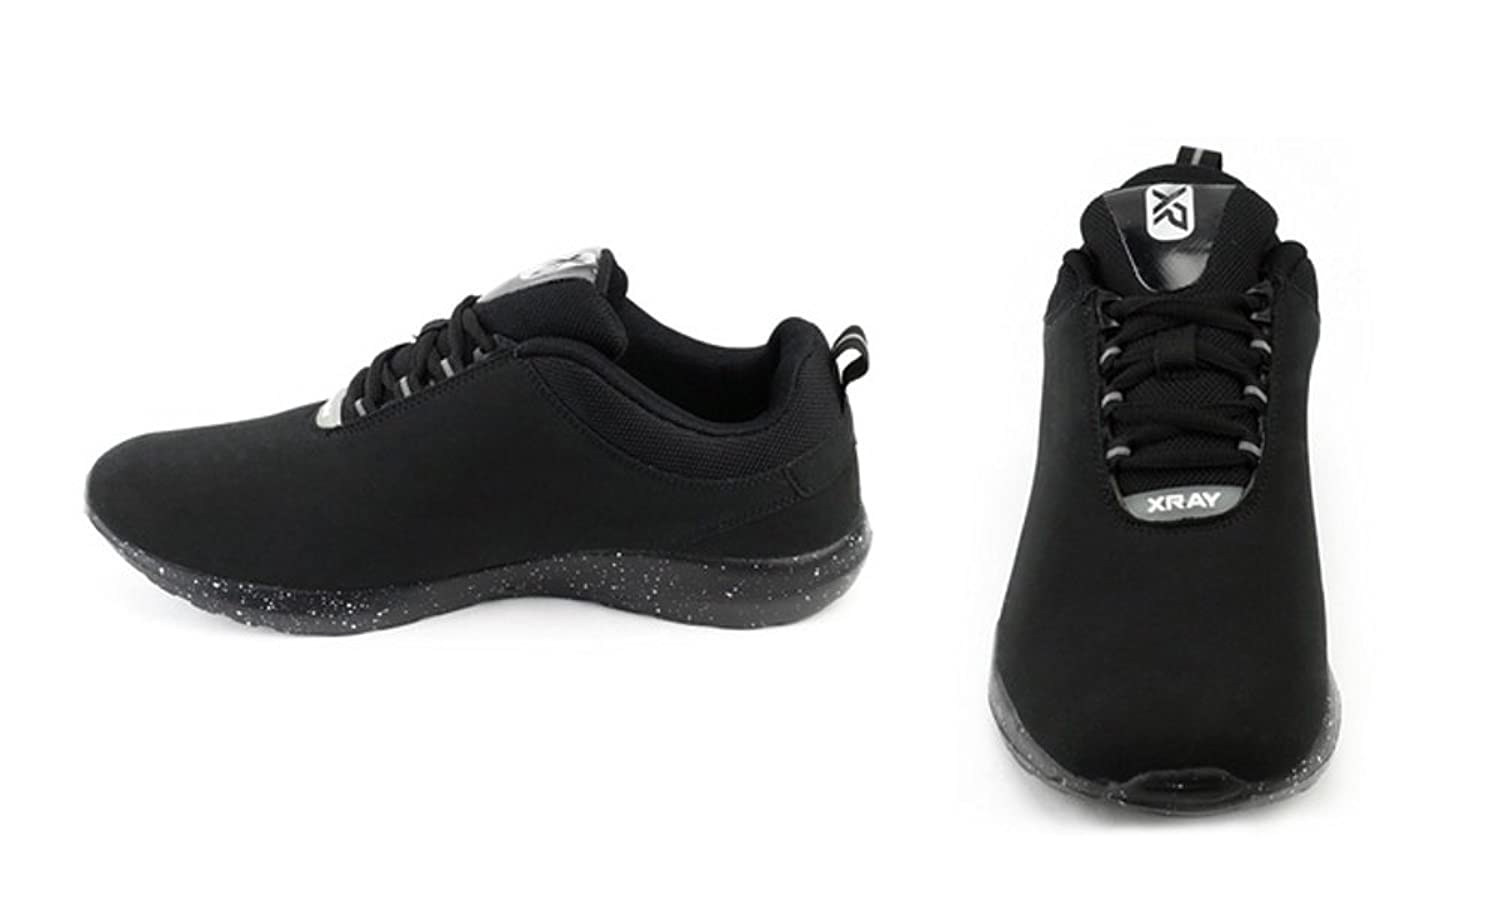 perfect cheap price Xray Jogger Sneaker cheap price from china cheap sale visit clearance largest supplier QHqcCsBMYn